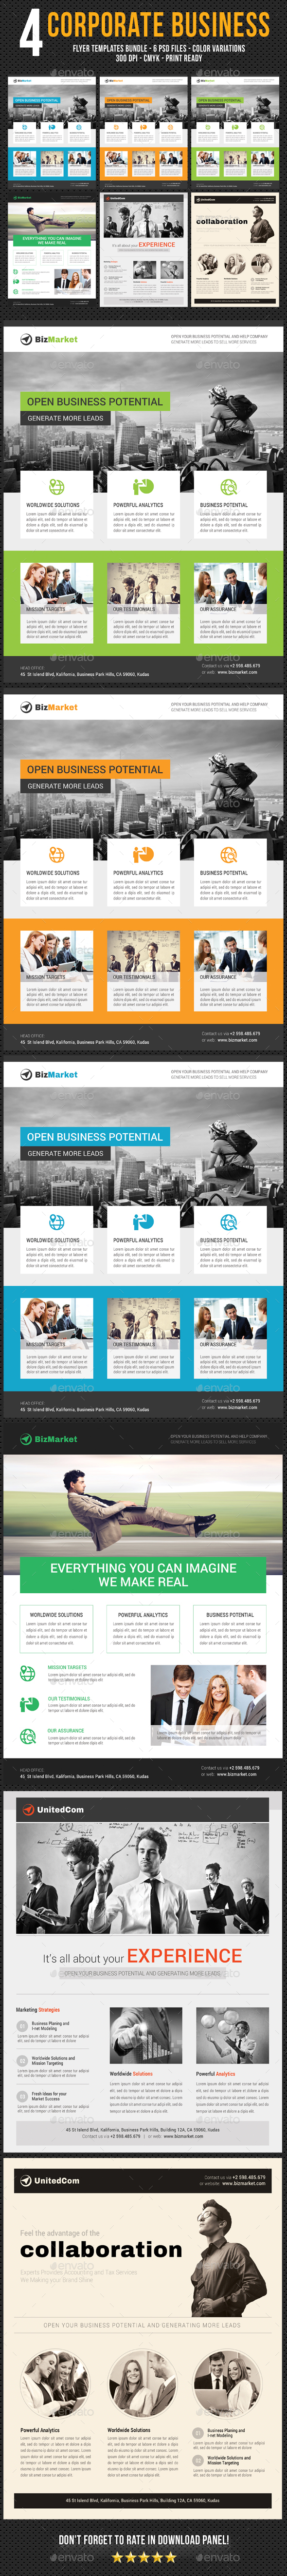 GraphicRiver 4 Corporate Business Flyer Templates Bundle V4 20504971